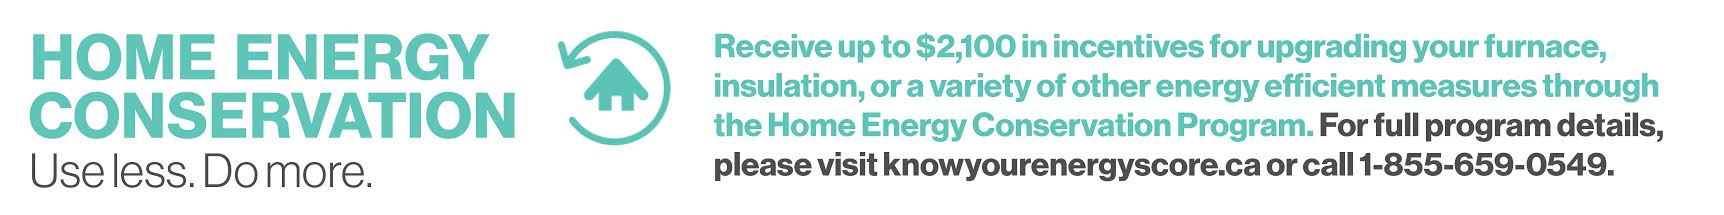 Enbridge Know Your Energy Score